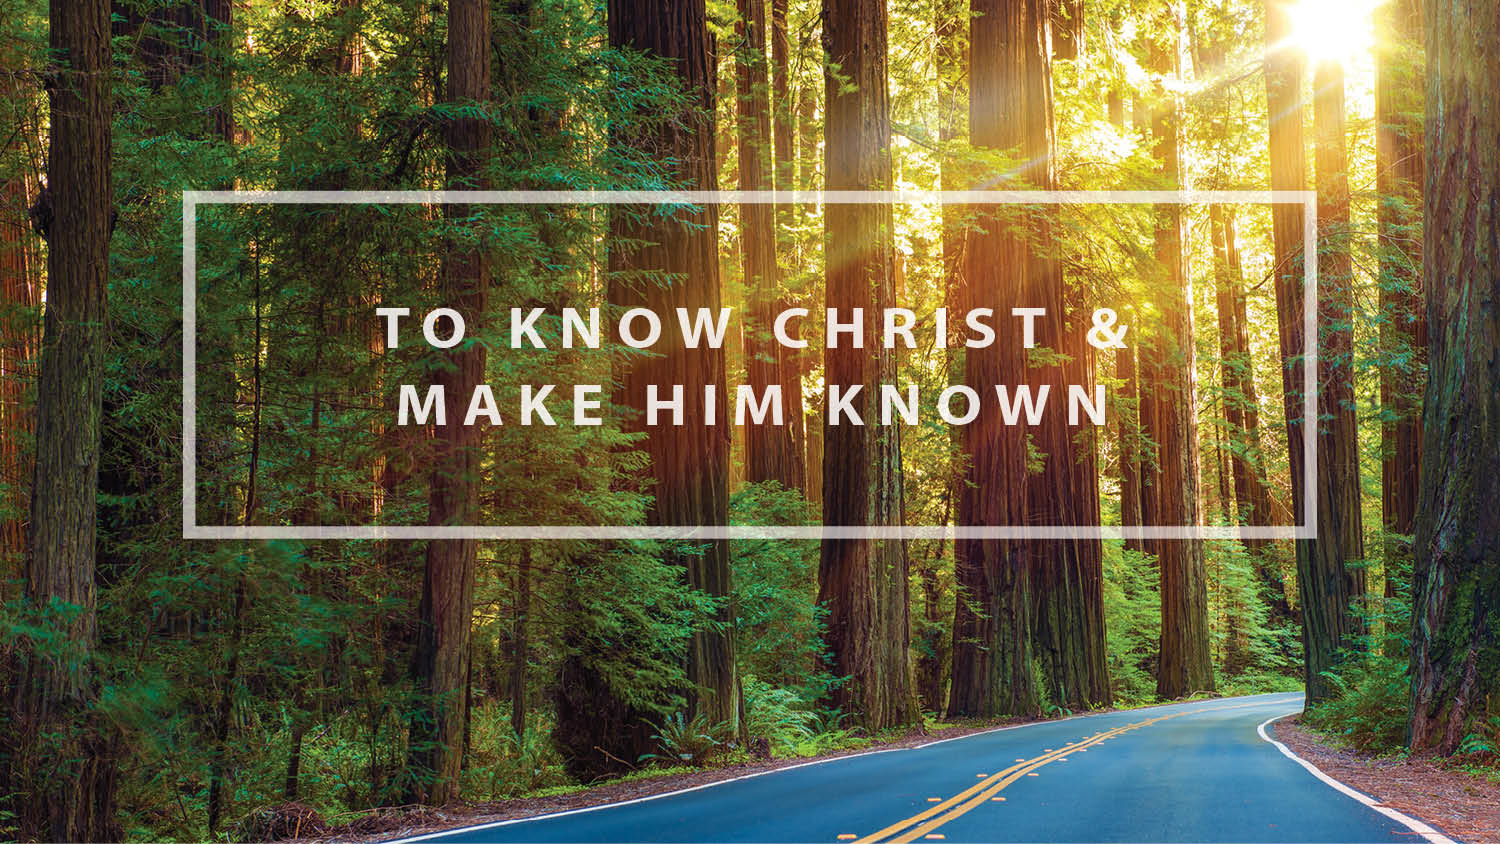 To Know Christ & Make Him Known